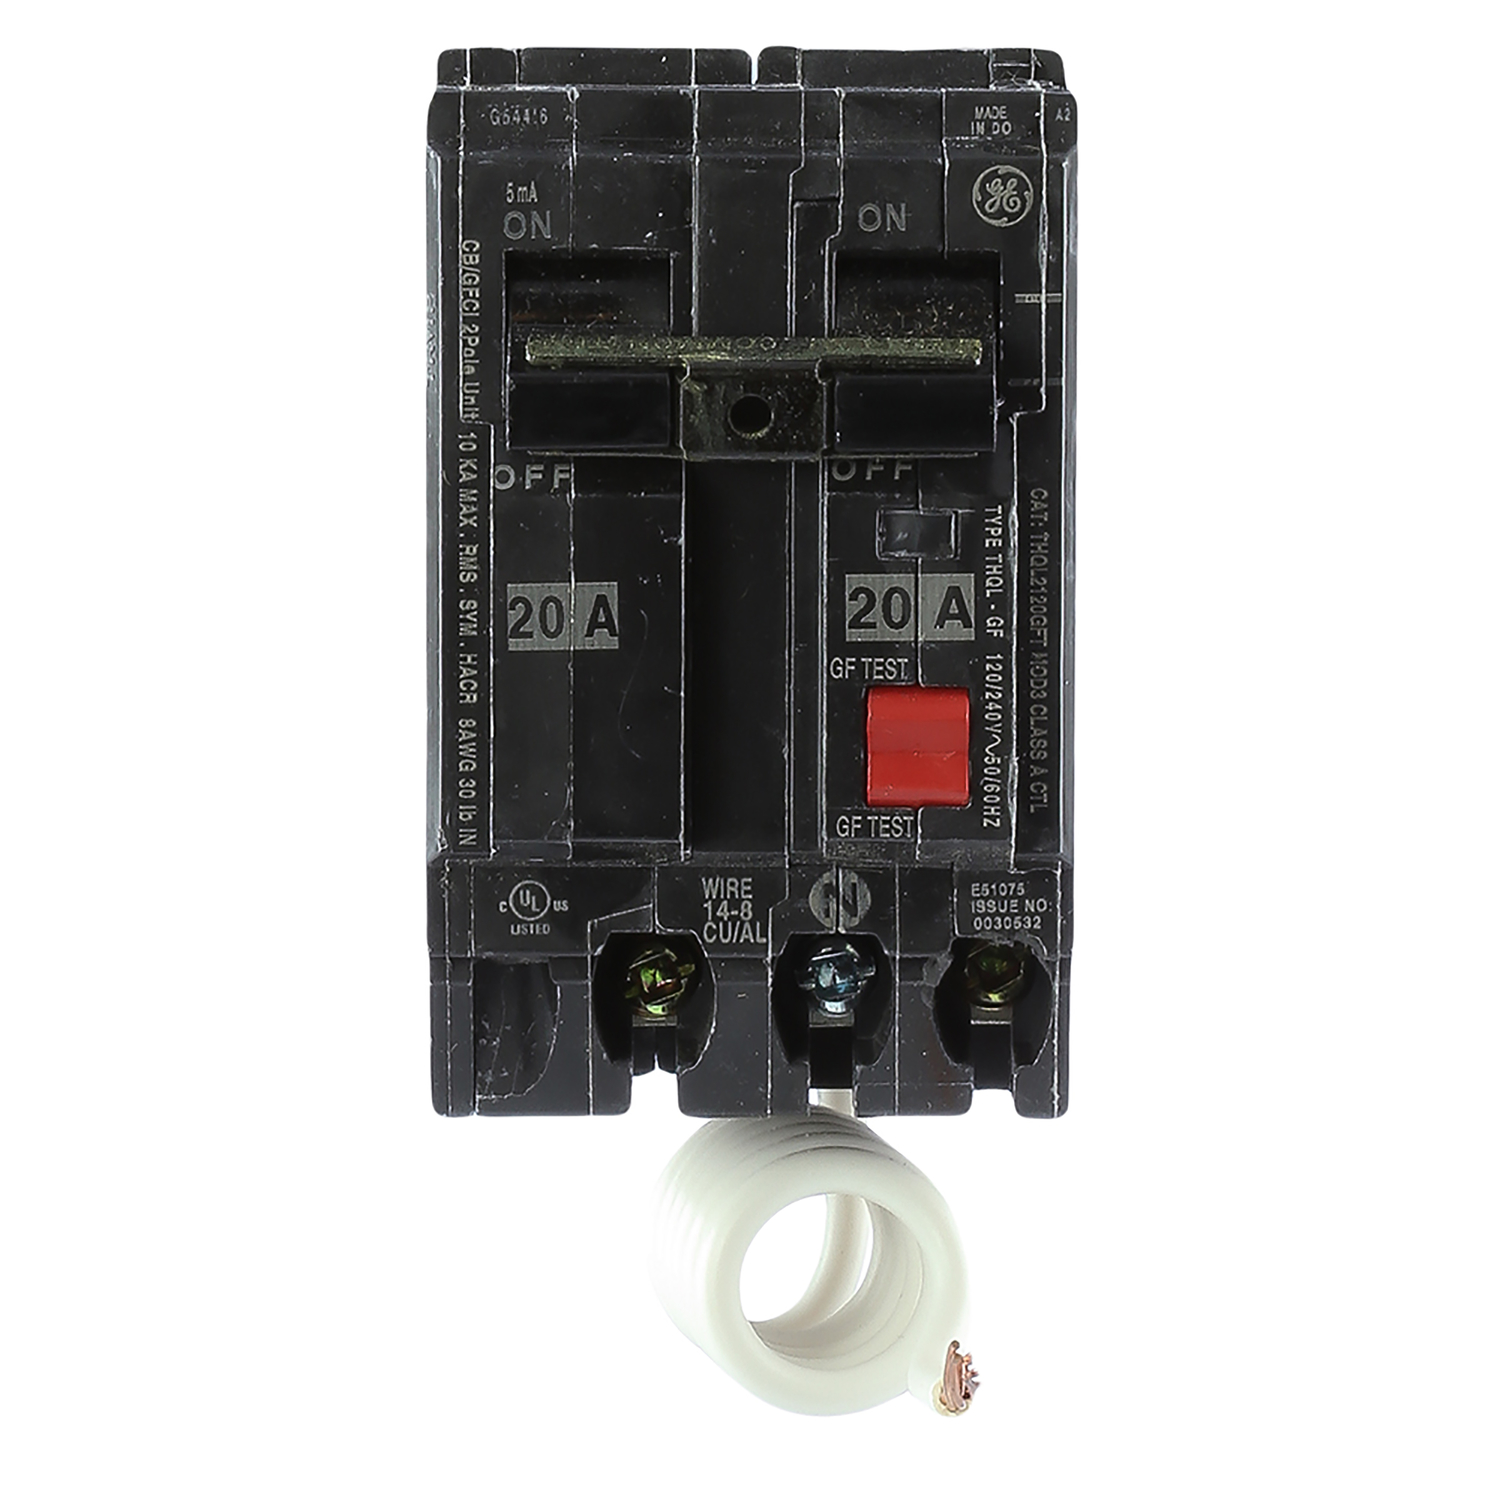 Home Fuse Box Parts Electrical Work Wiring Diagram \u2022 Old Gear Box 100  Old Fuse Box